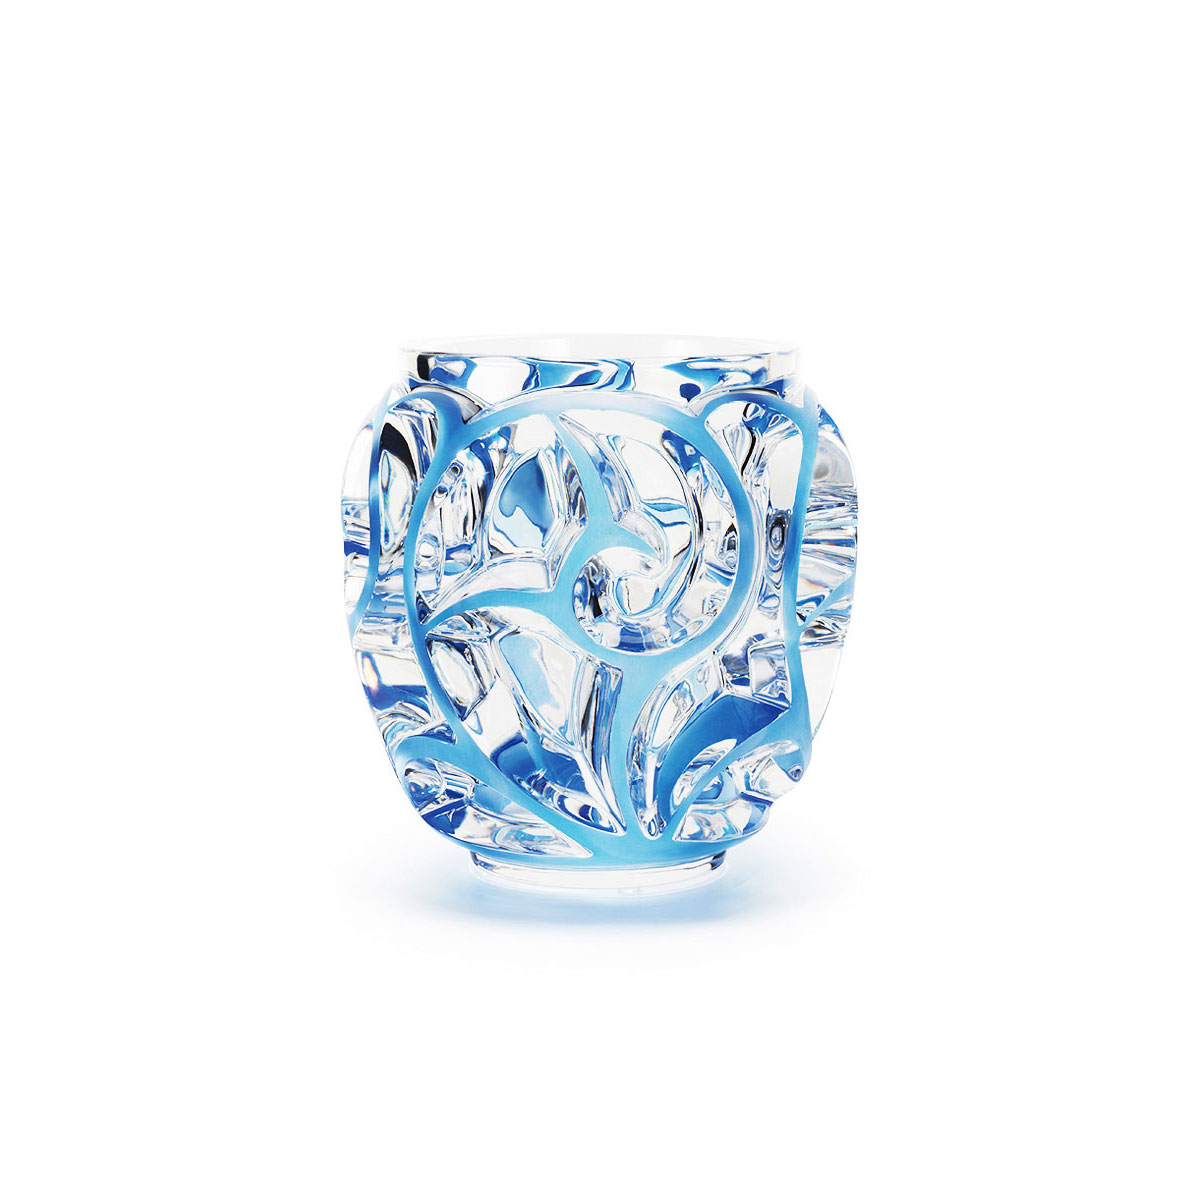 "Lalique Crystal, Tourbillons 8 1/8"" Blue Crystal Vase, Limited Edition"